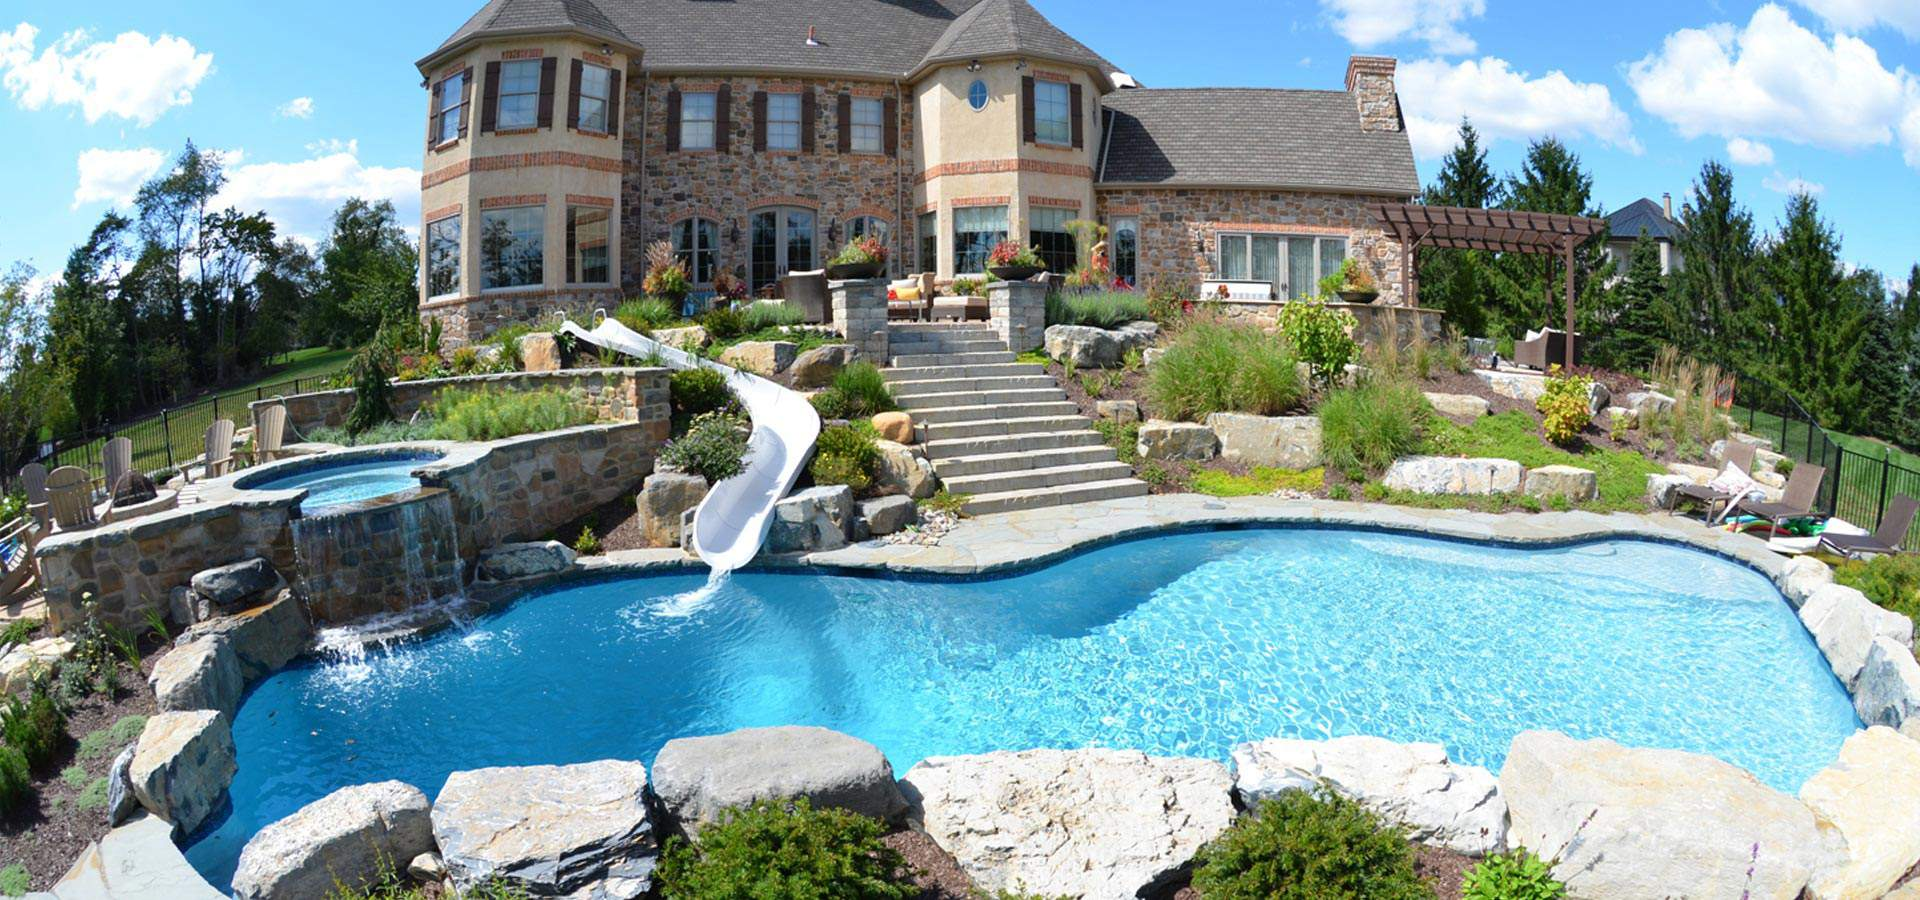 1 pool builder in lehigh valley pa best inground pools for Underground swimming pool designs